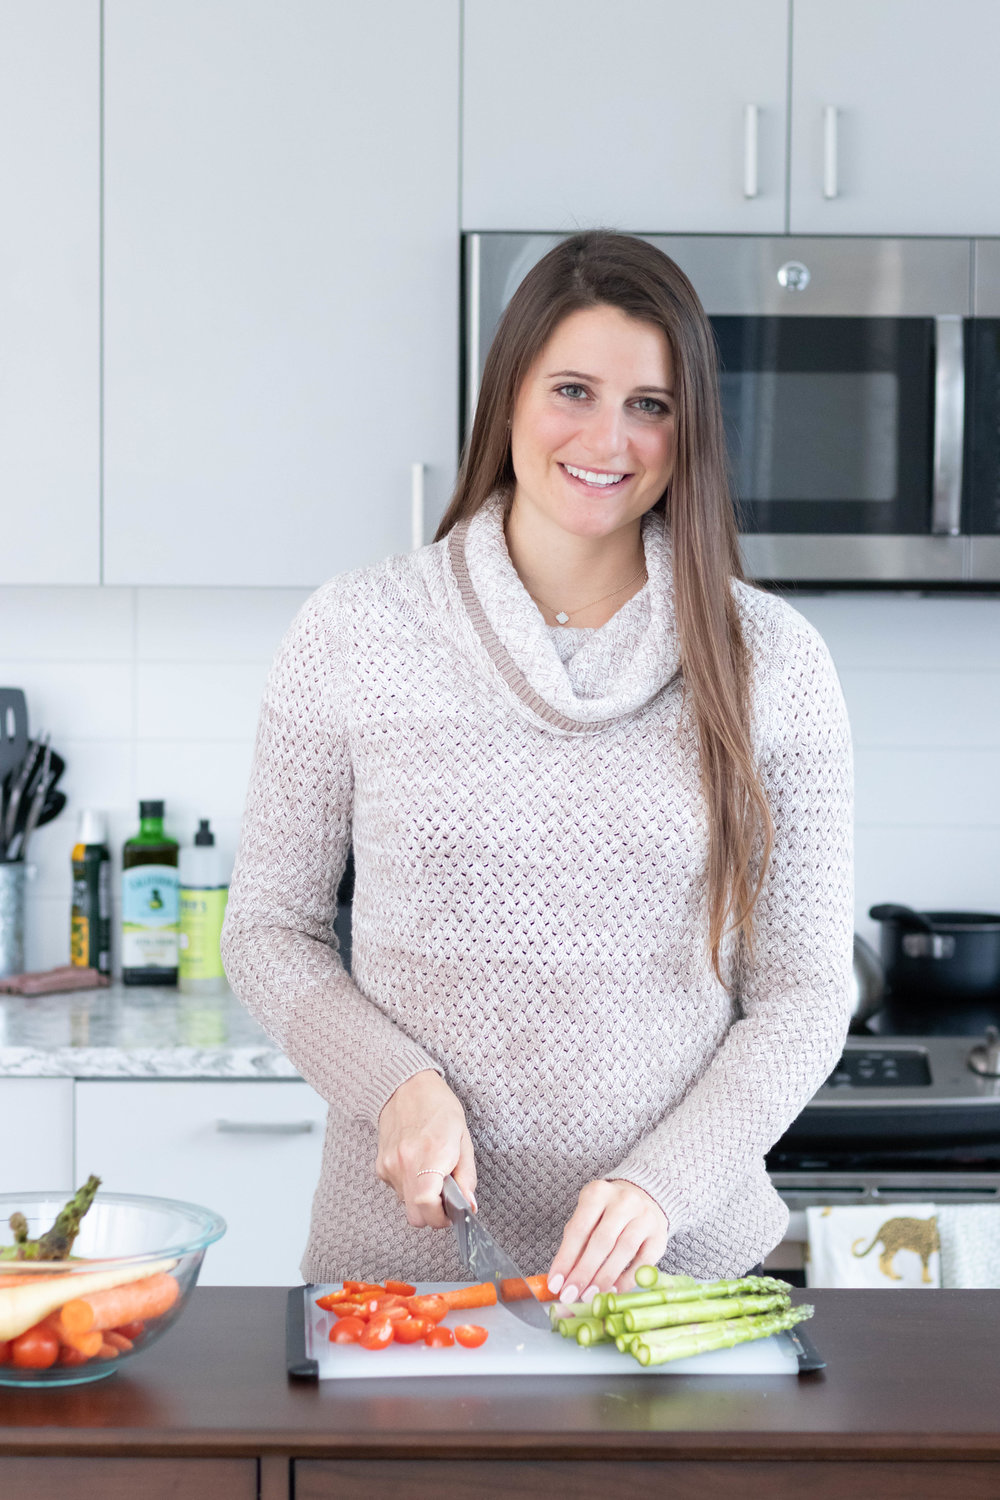 Lifestyle portrait photography of Erin Kenney from Nutrition Rewired registered dieititan chopping vegetables in her kitchen photographed by Vision Balm in Charleston, SC.